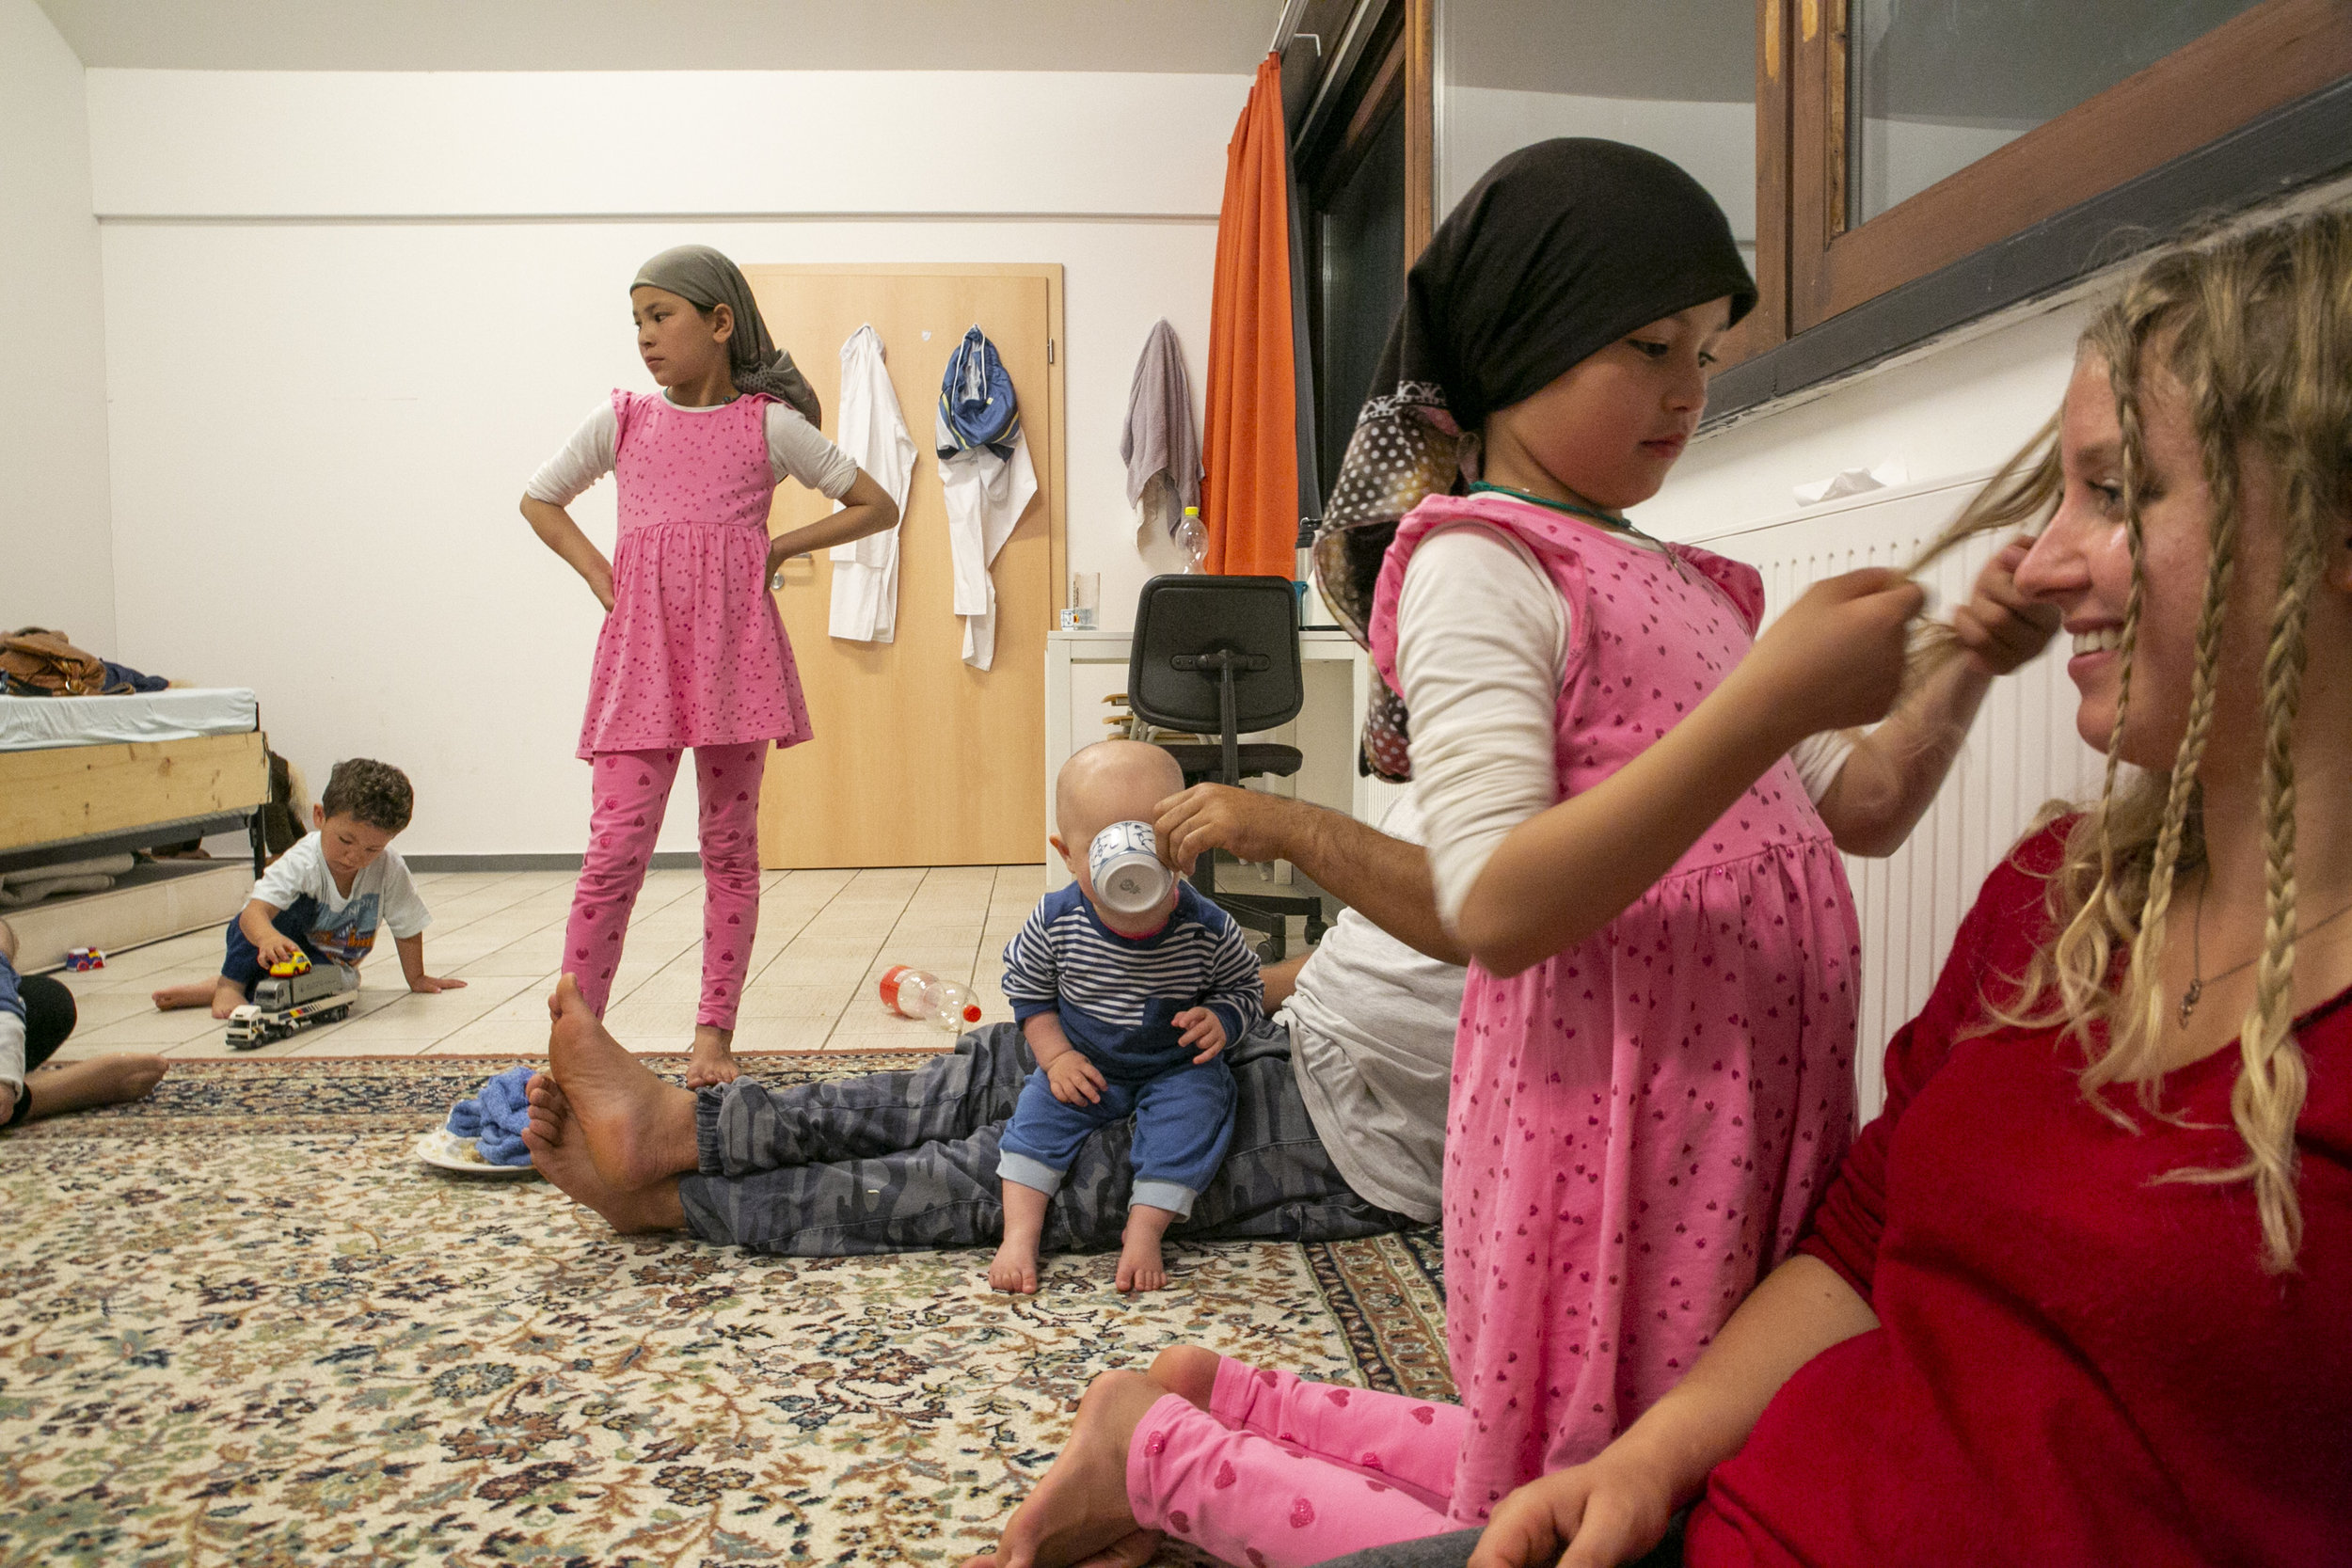 The Noori family traveled on foot from Afghanistan to Serbia in 2016, where they developed a strong bond to Diana Vasov, a 24-year-old aid worker in Belgrade. Like their daughter Donia, center, Vasov, right, was also born in a refugee camp after her family fled Yugoslavia in 1991. Here, Vasov visits the Noori family on June 29, 2017, in Germany, where they were granted asylum in 2017.